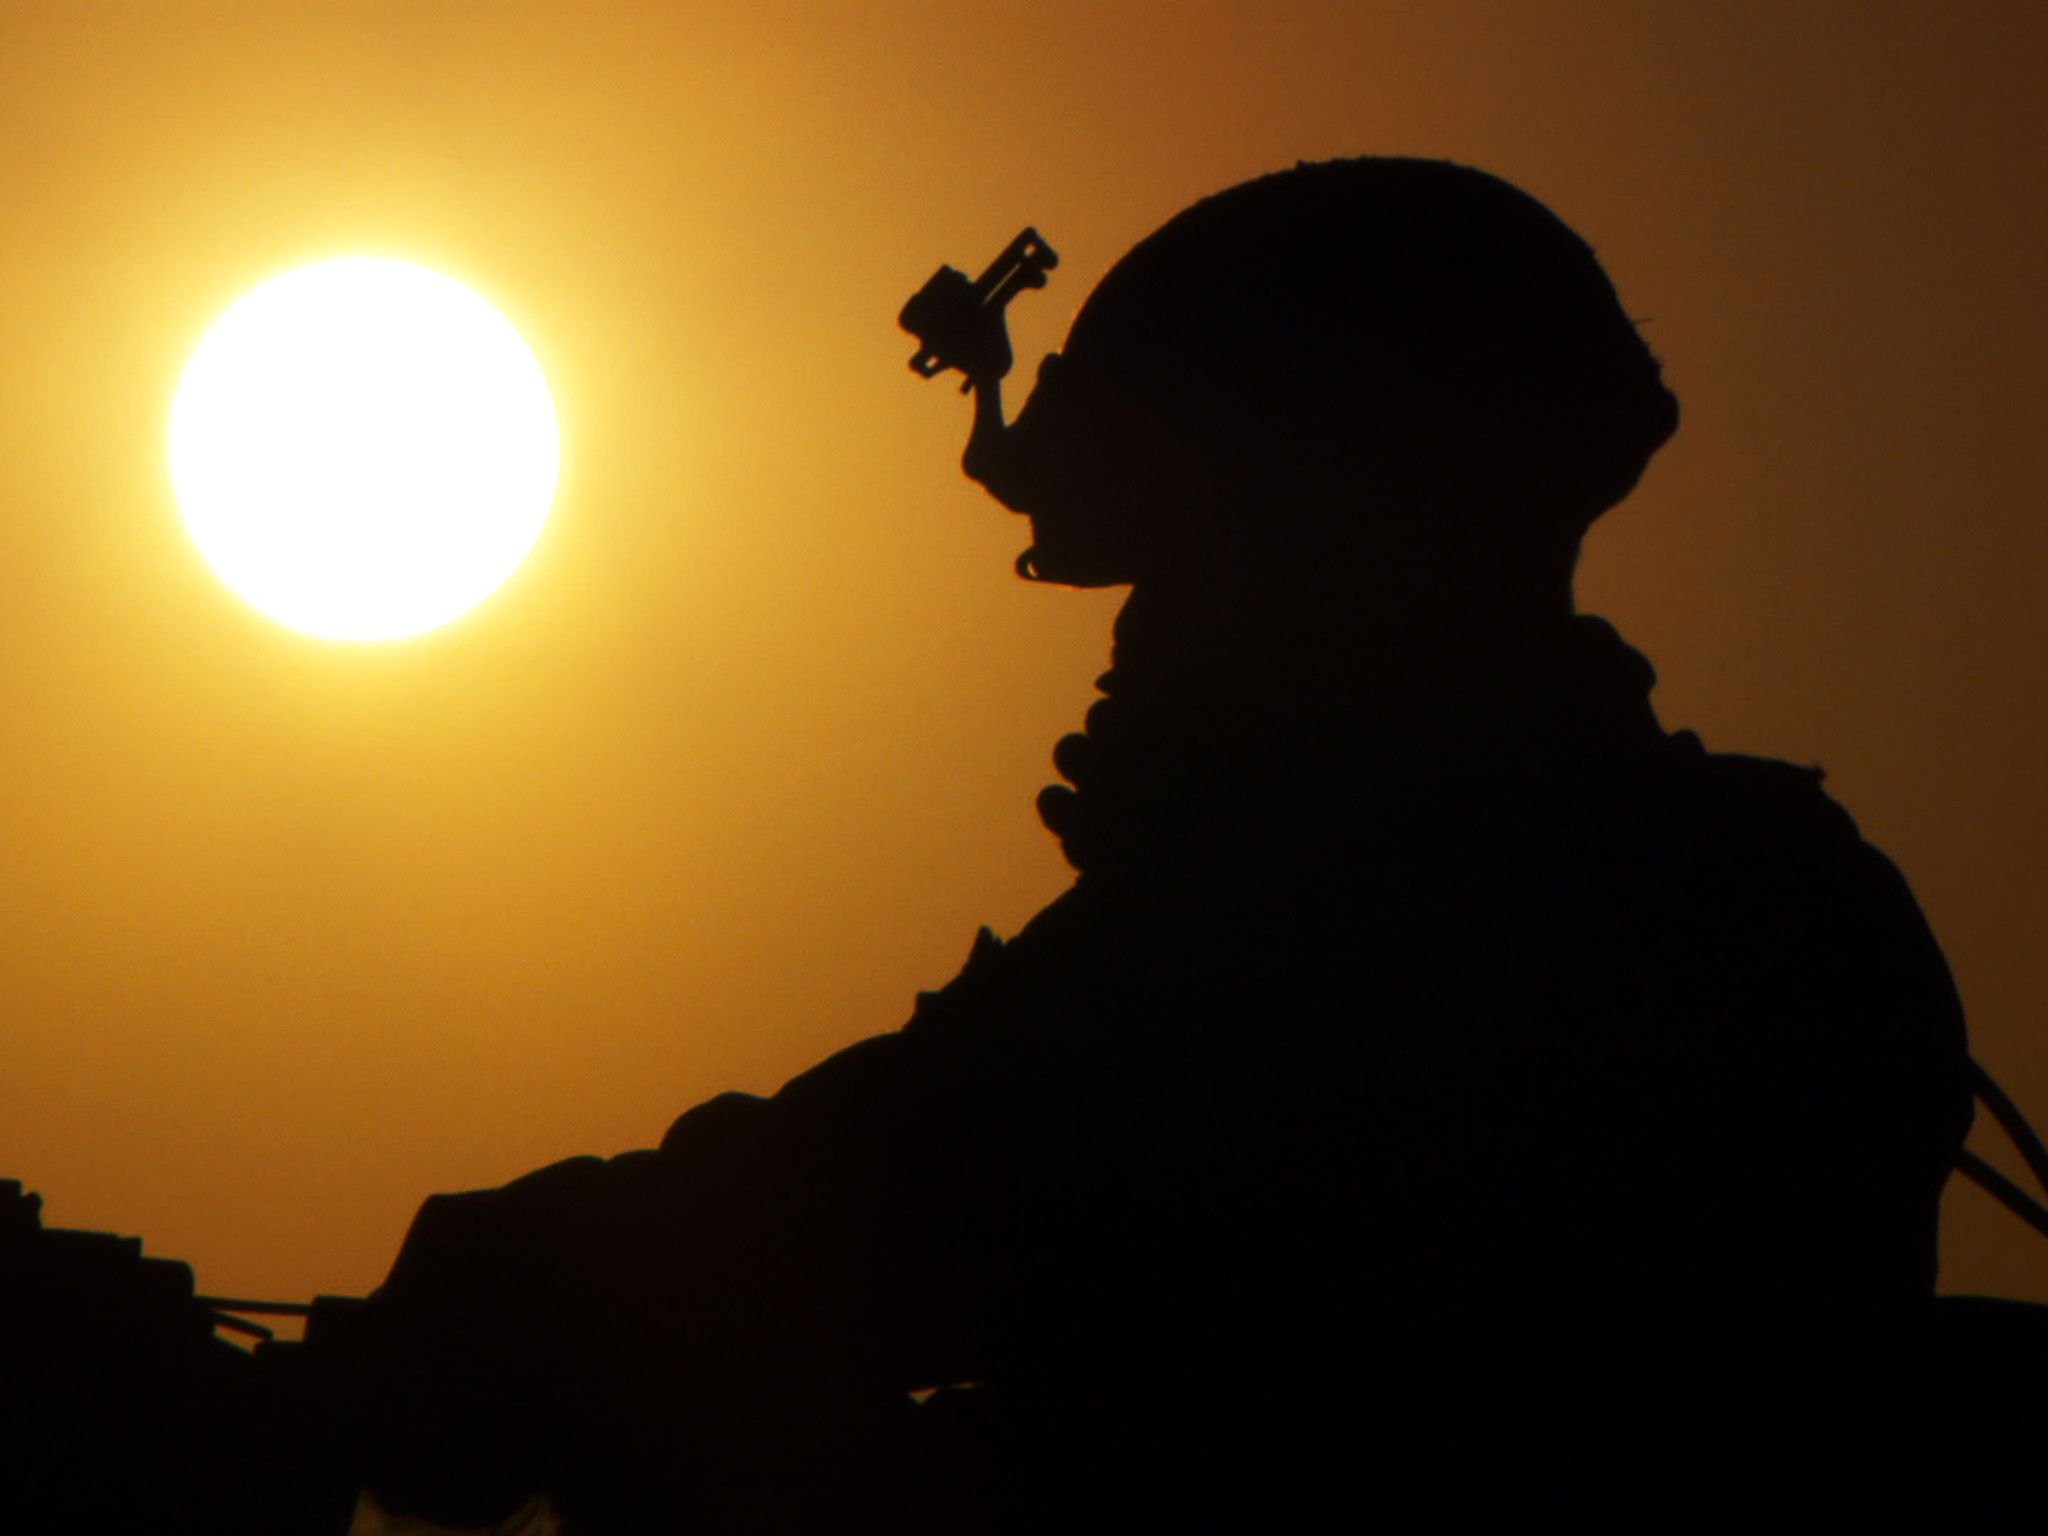 Helmand Province, Afghanistan: A silhouette of a Marine gunner and the sun in Afghanistan. This... [Photo of the day - November 2016]